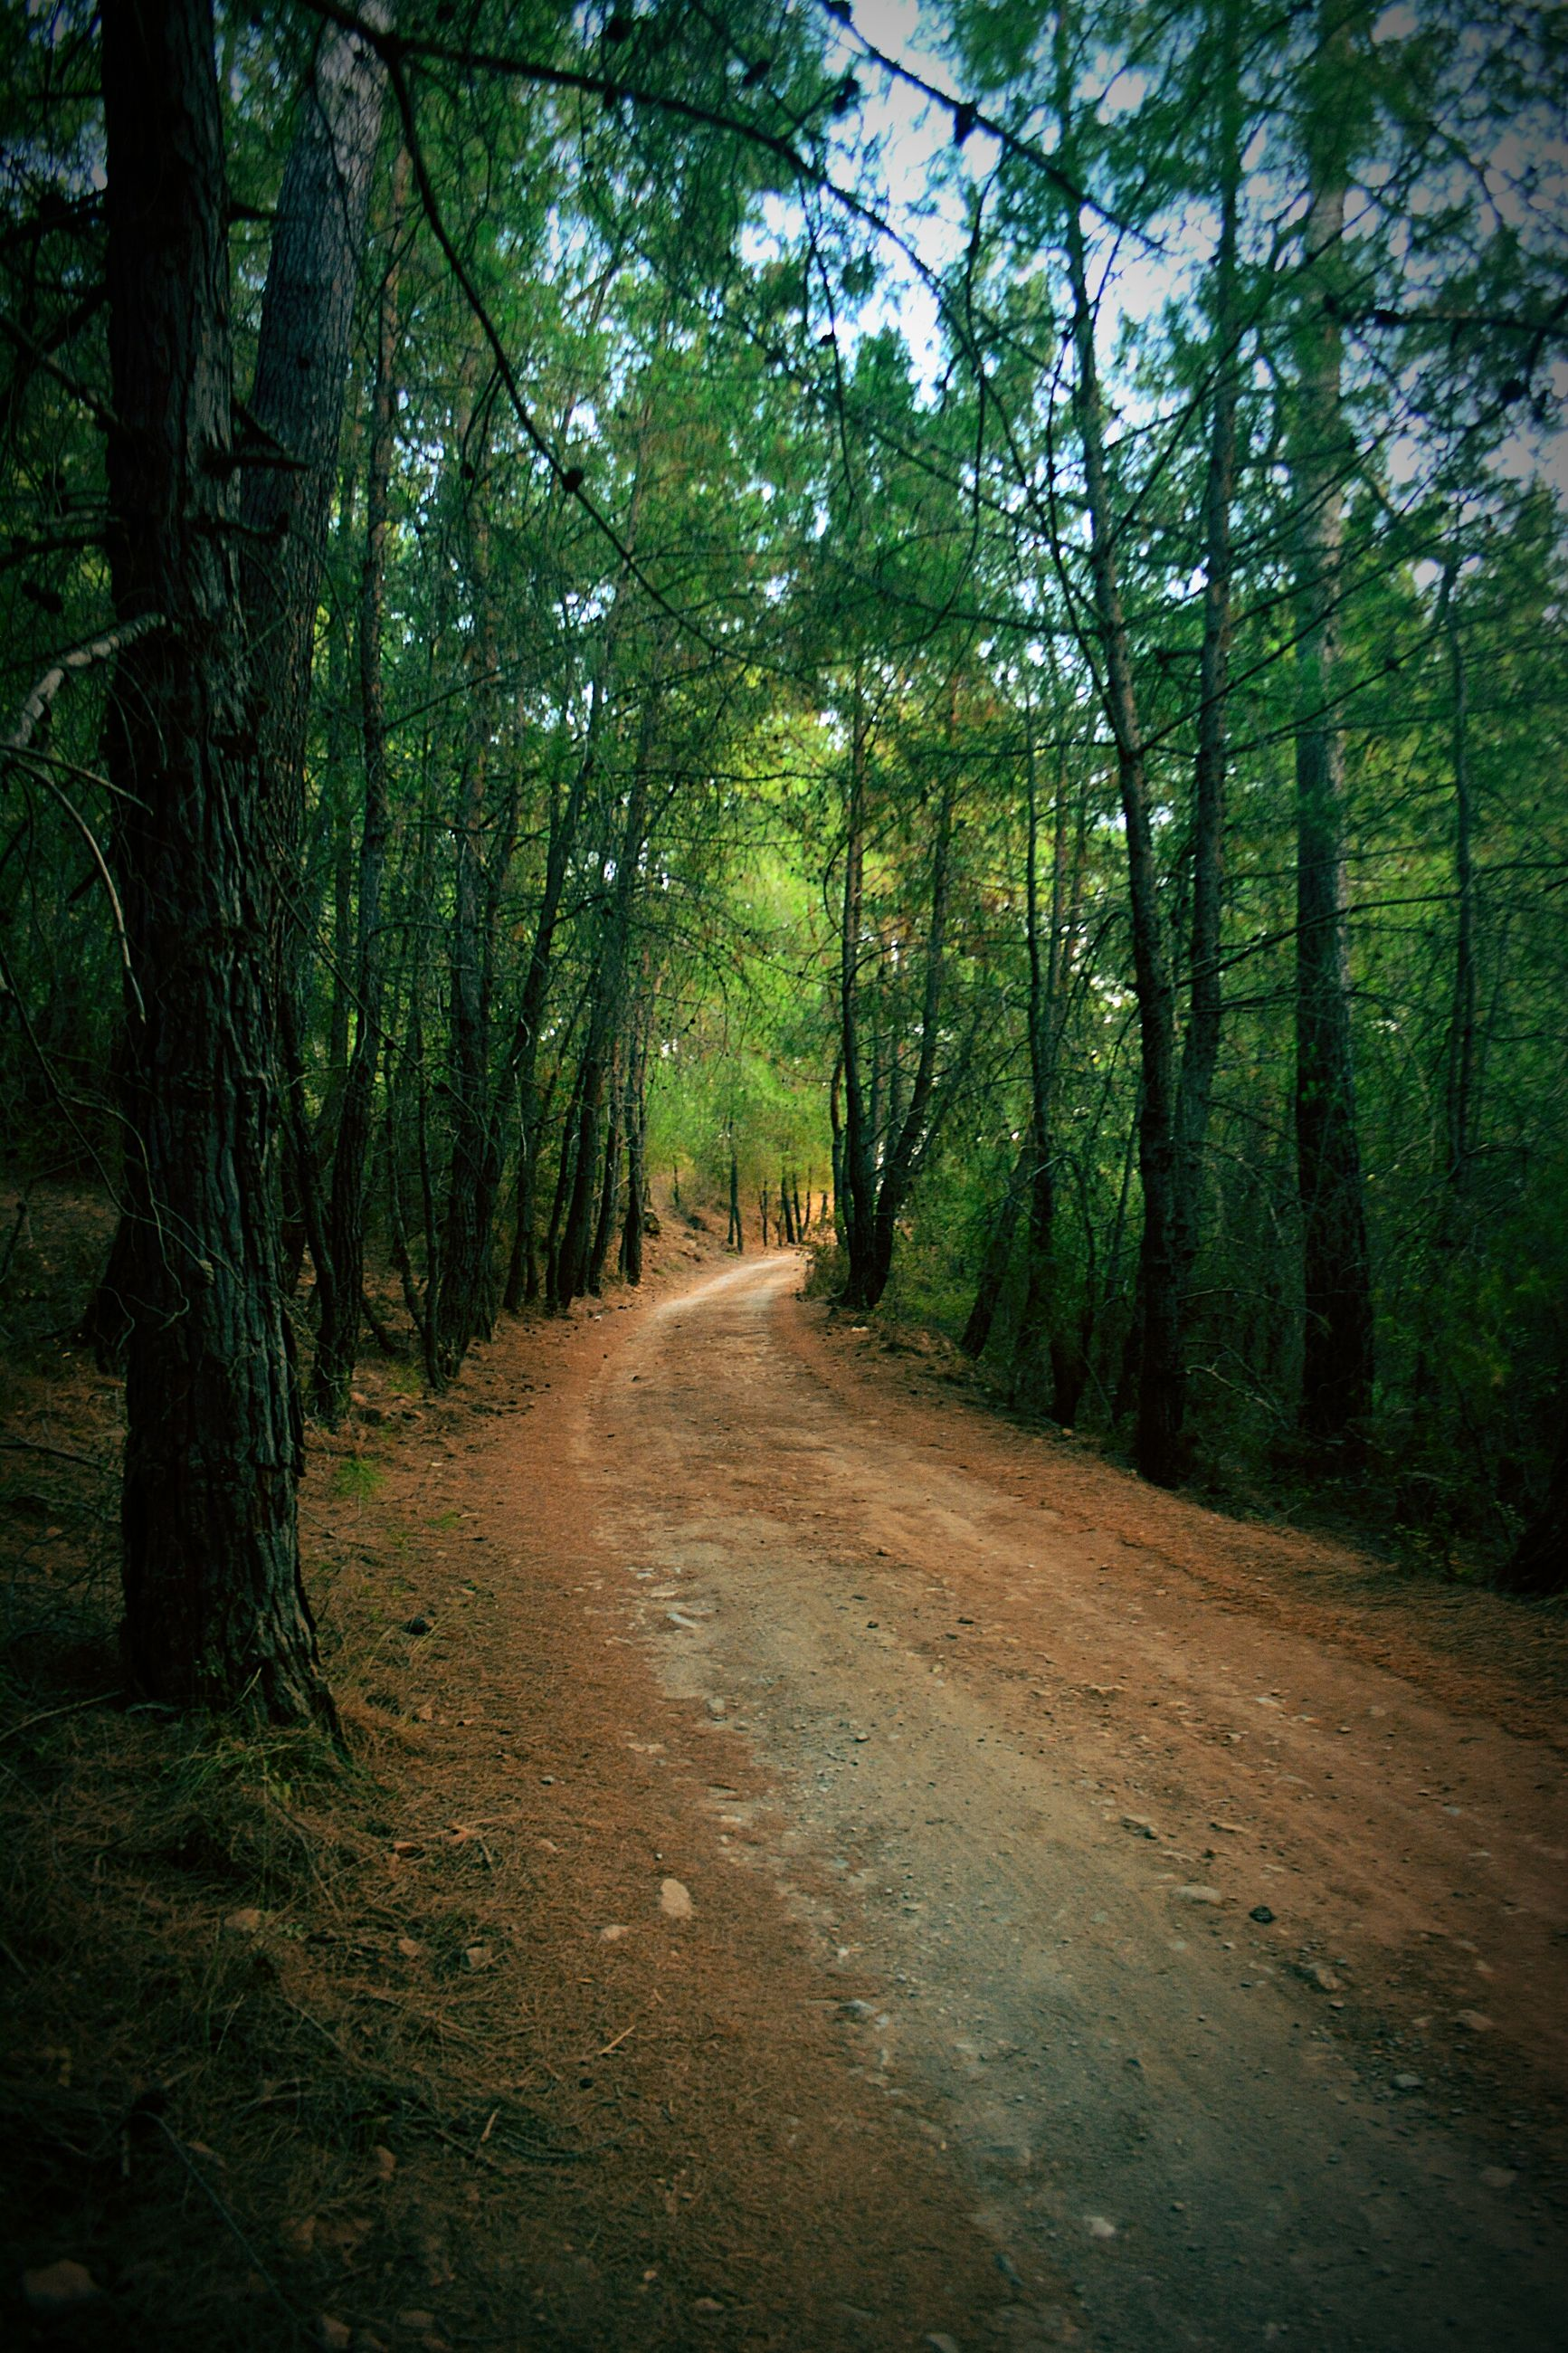 tree, forest, nature, the way forward, woodland, tranquility, tranquil scene, road, outdoors, beauty in nature, day, scenics, no people, landscape